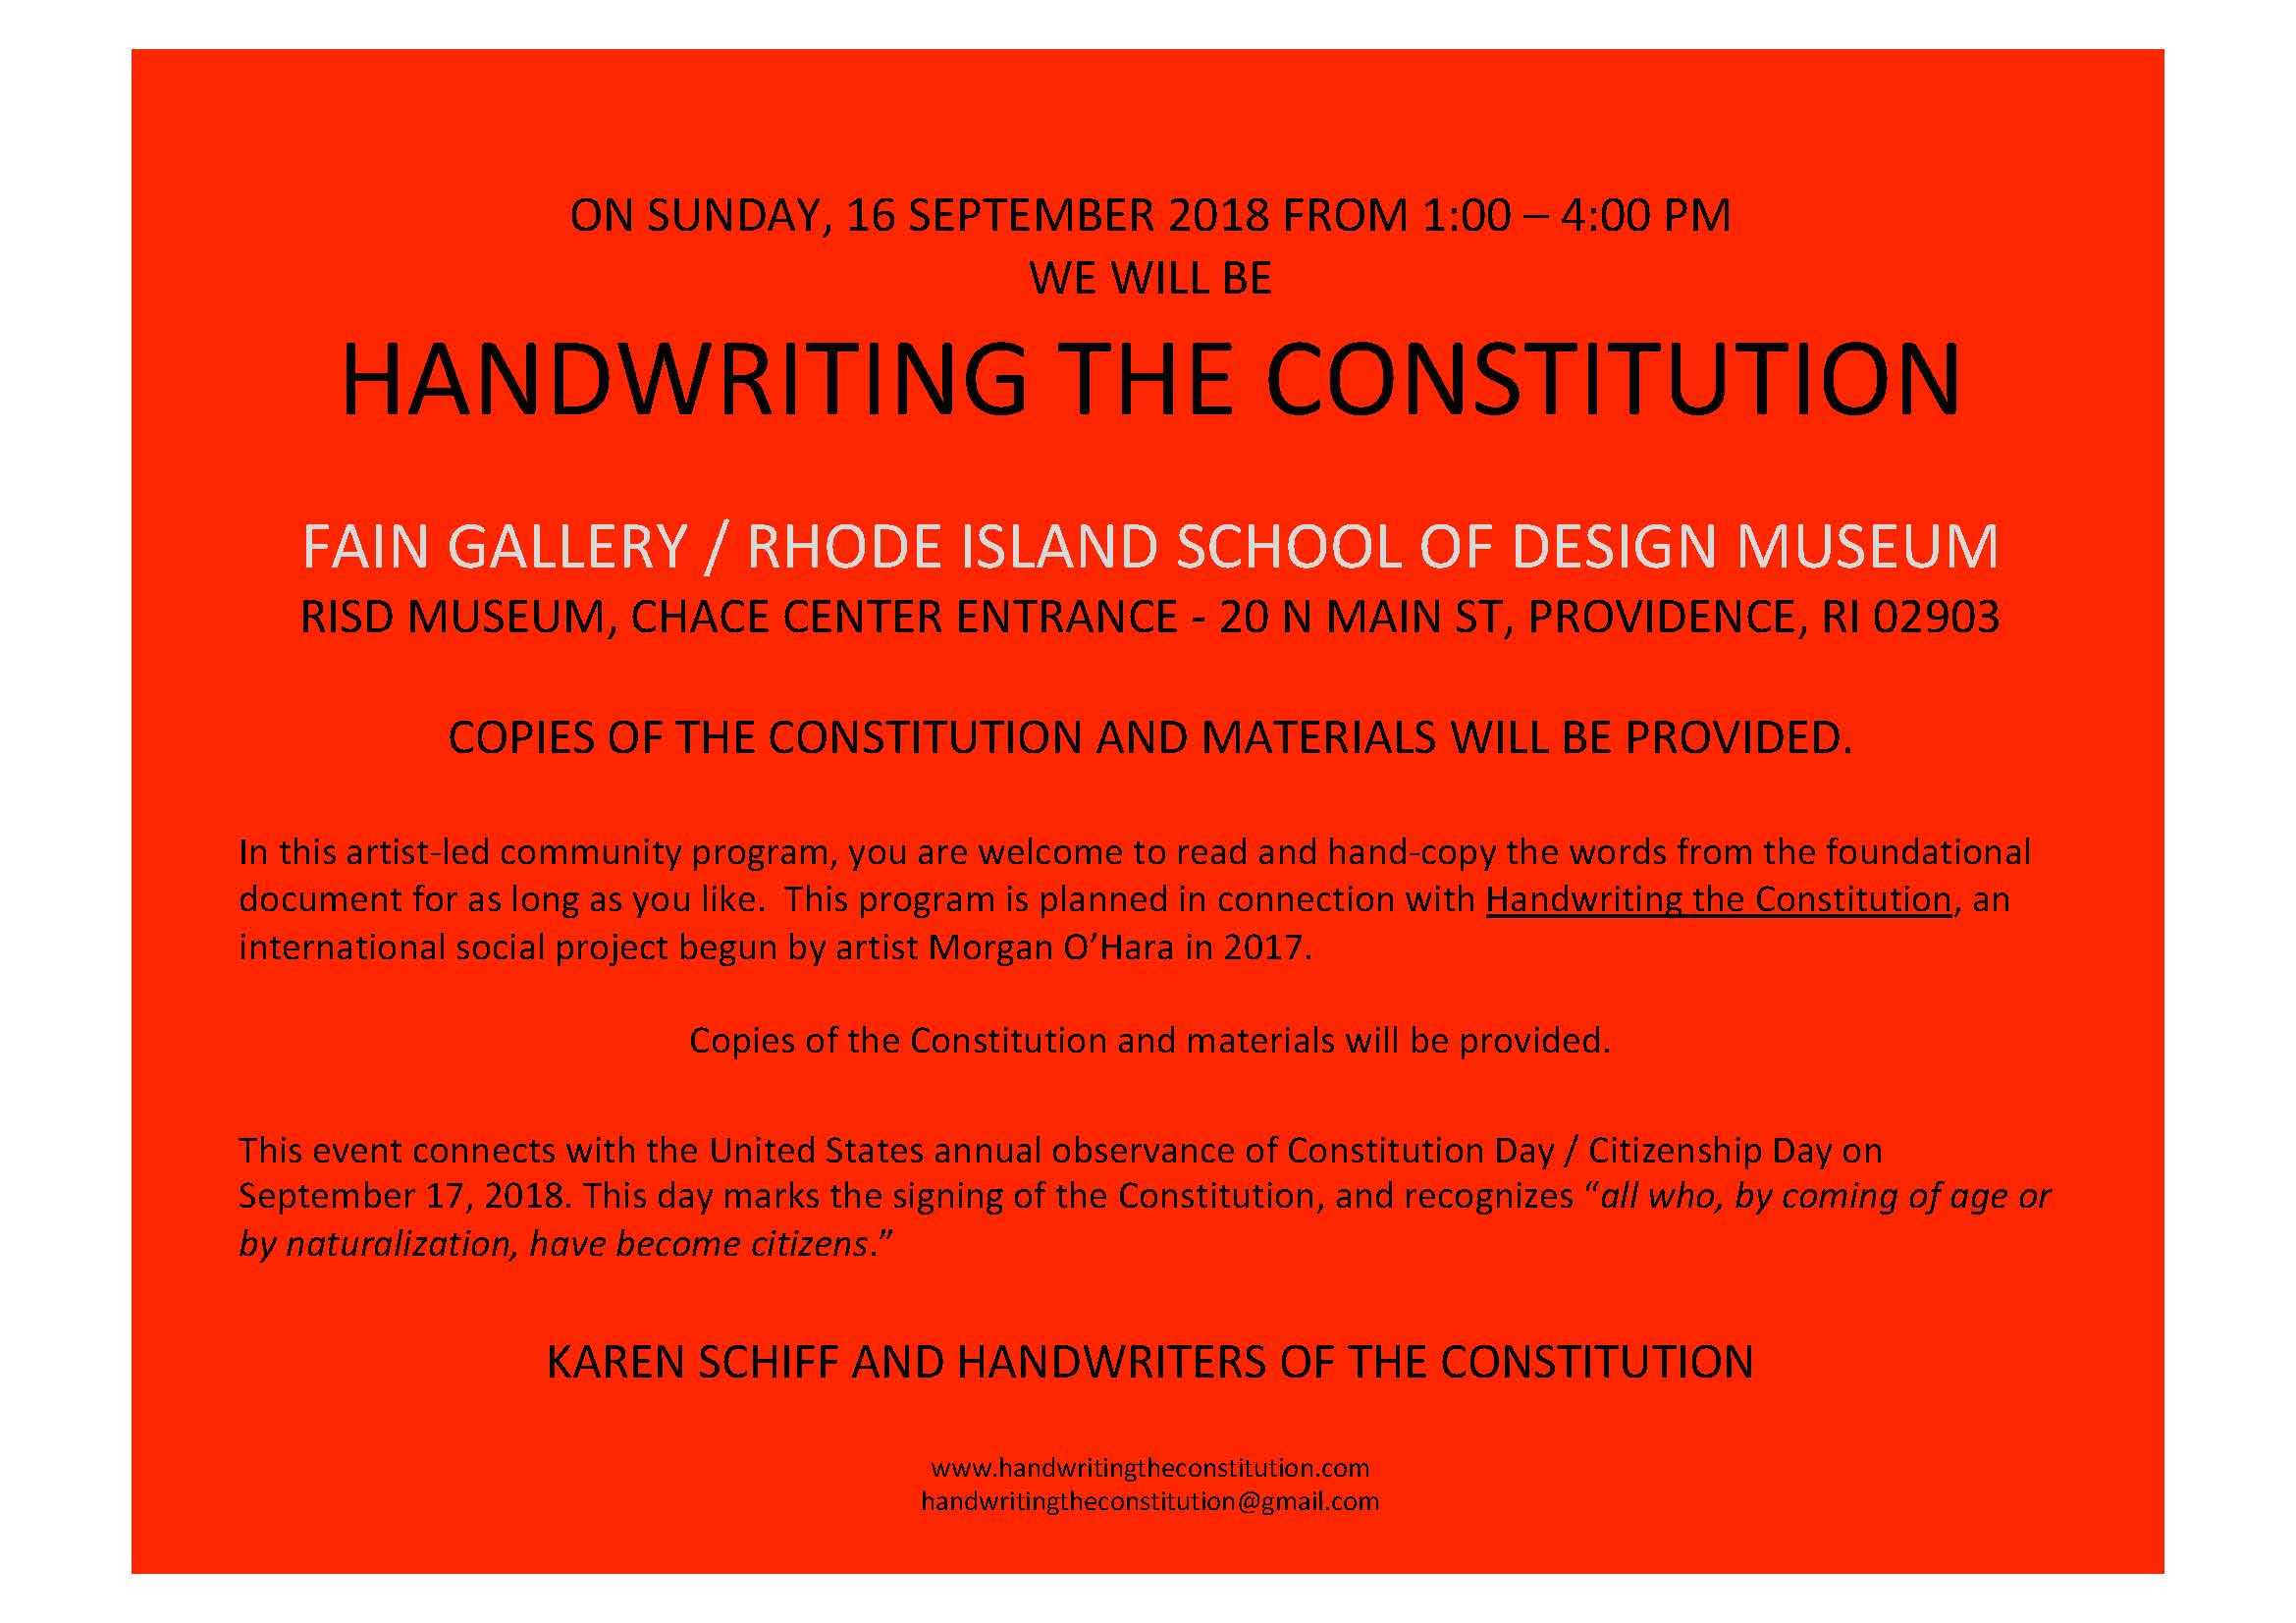 16 SEPtember 2018providence, RI - session 65collaborators karen Schiff and the rhode island school of design museum staff